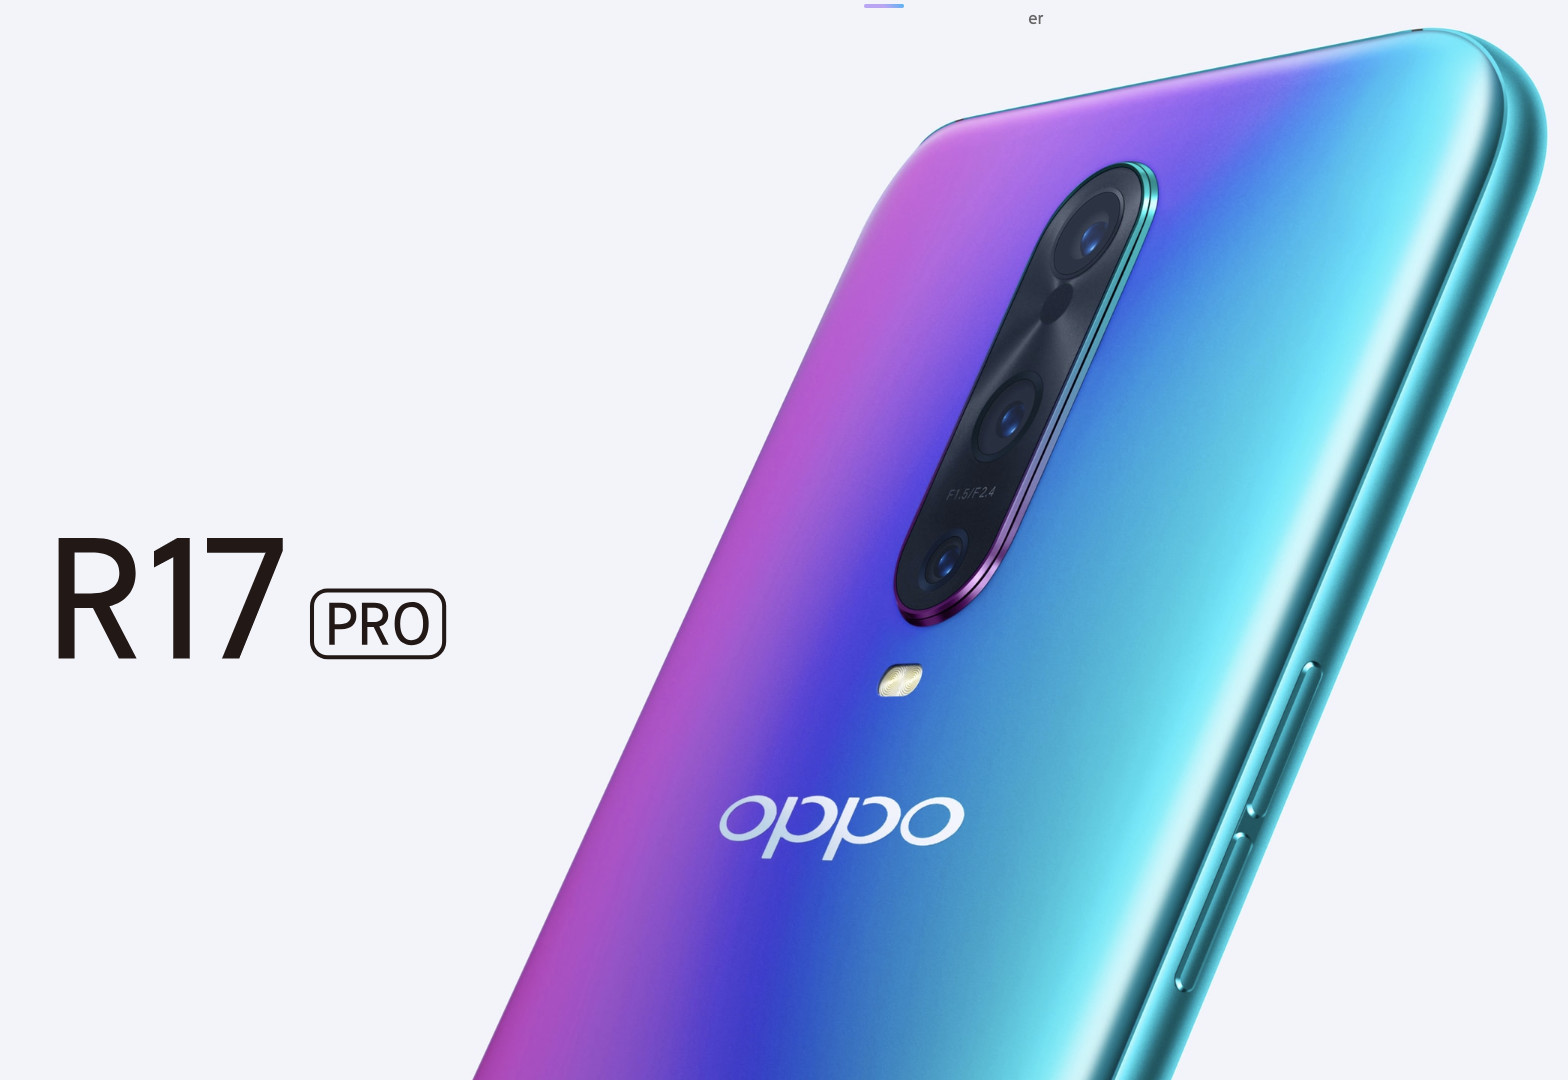 Oppo's R17 Pro has an in-display fingerprint reader, dual batteries